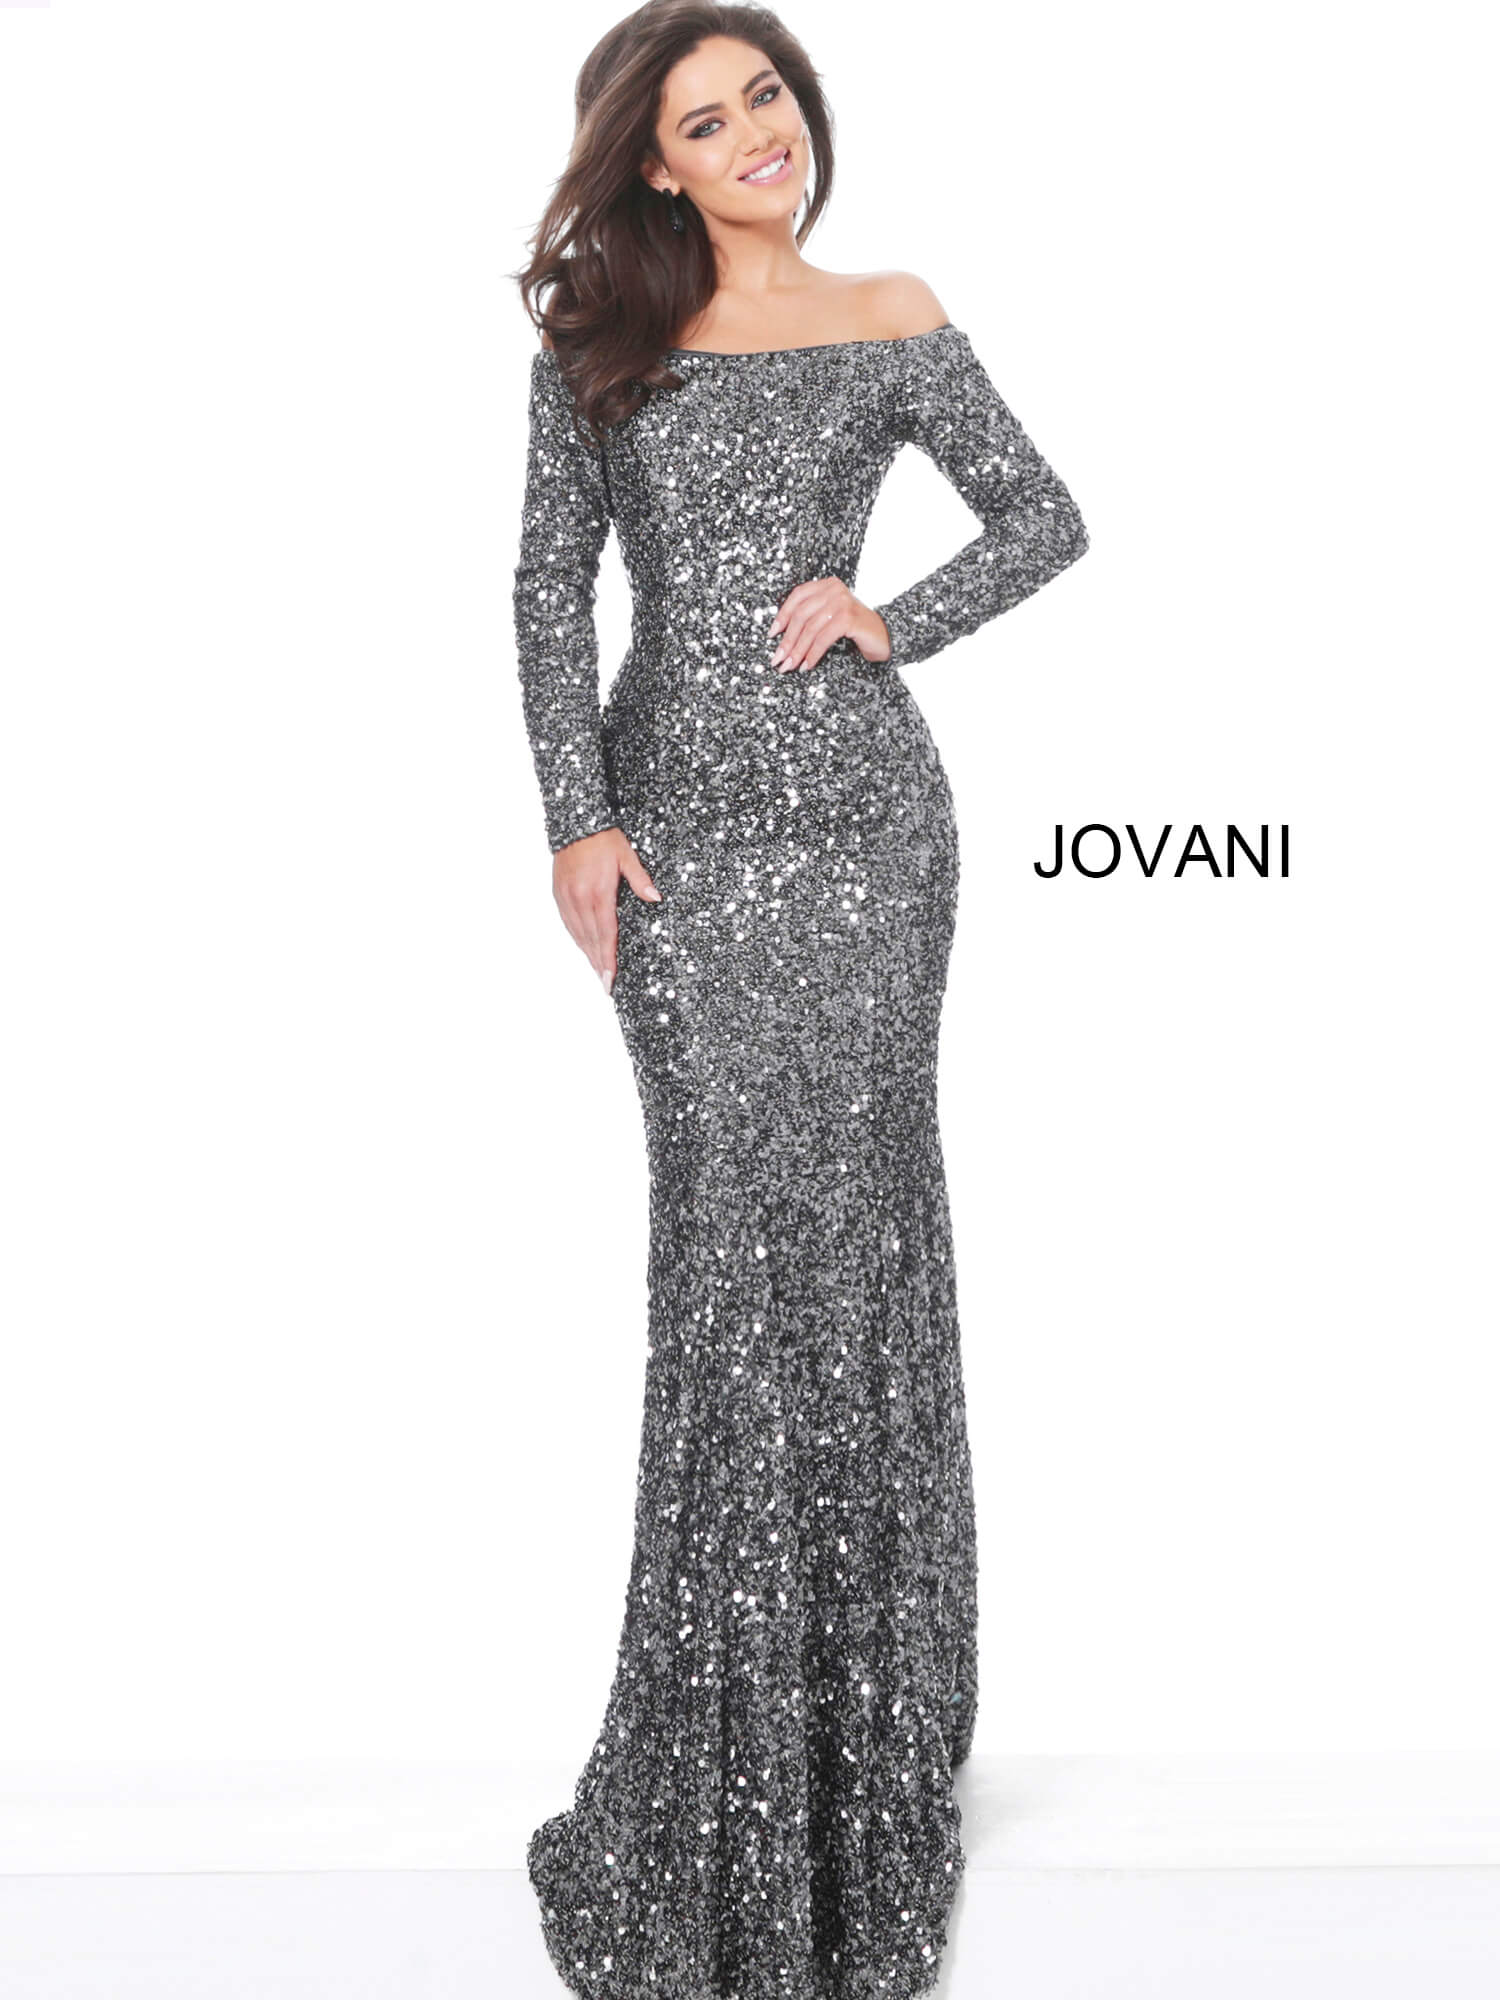 jovani Jovani 61470 Gunmetal Off the Shoulder Sequin Evening Dress on mobile 1